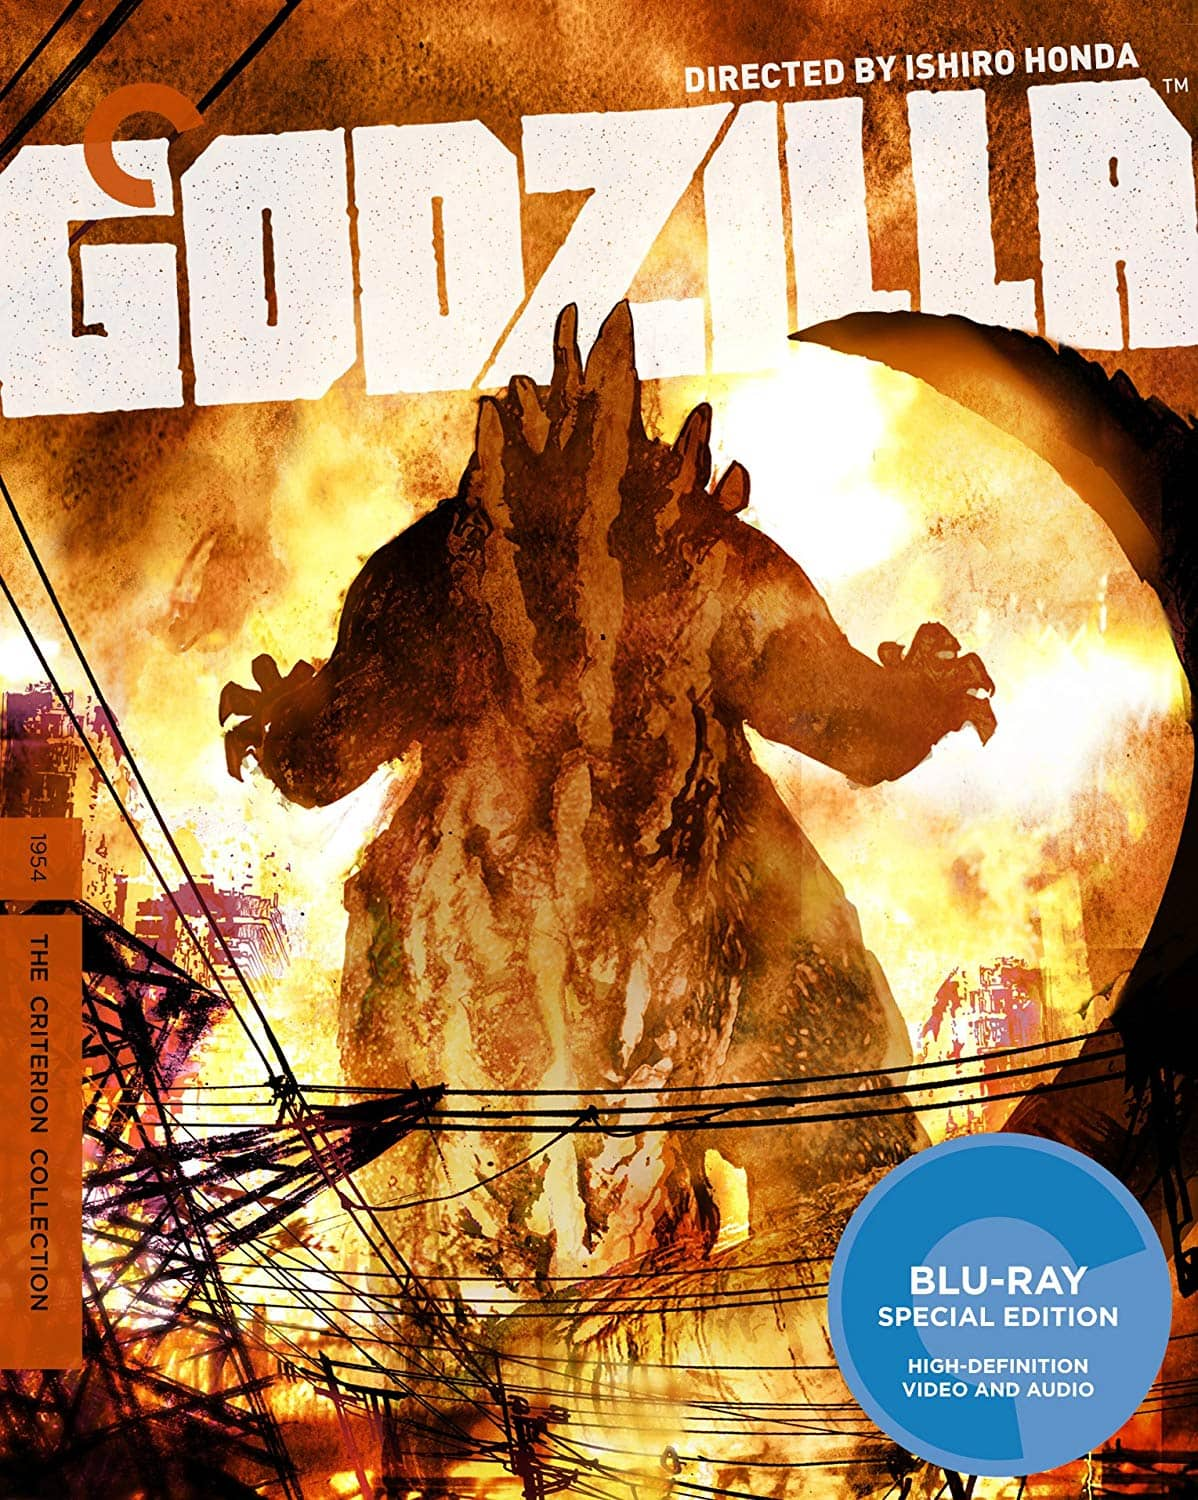 Criterion Blu-rays: Godzilla 1954, The Blob 1958, The Beatles: A Hard Day's Night 1964 $18.96 Each & More @ Walmart & Amazon